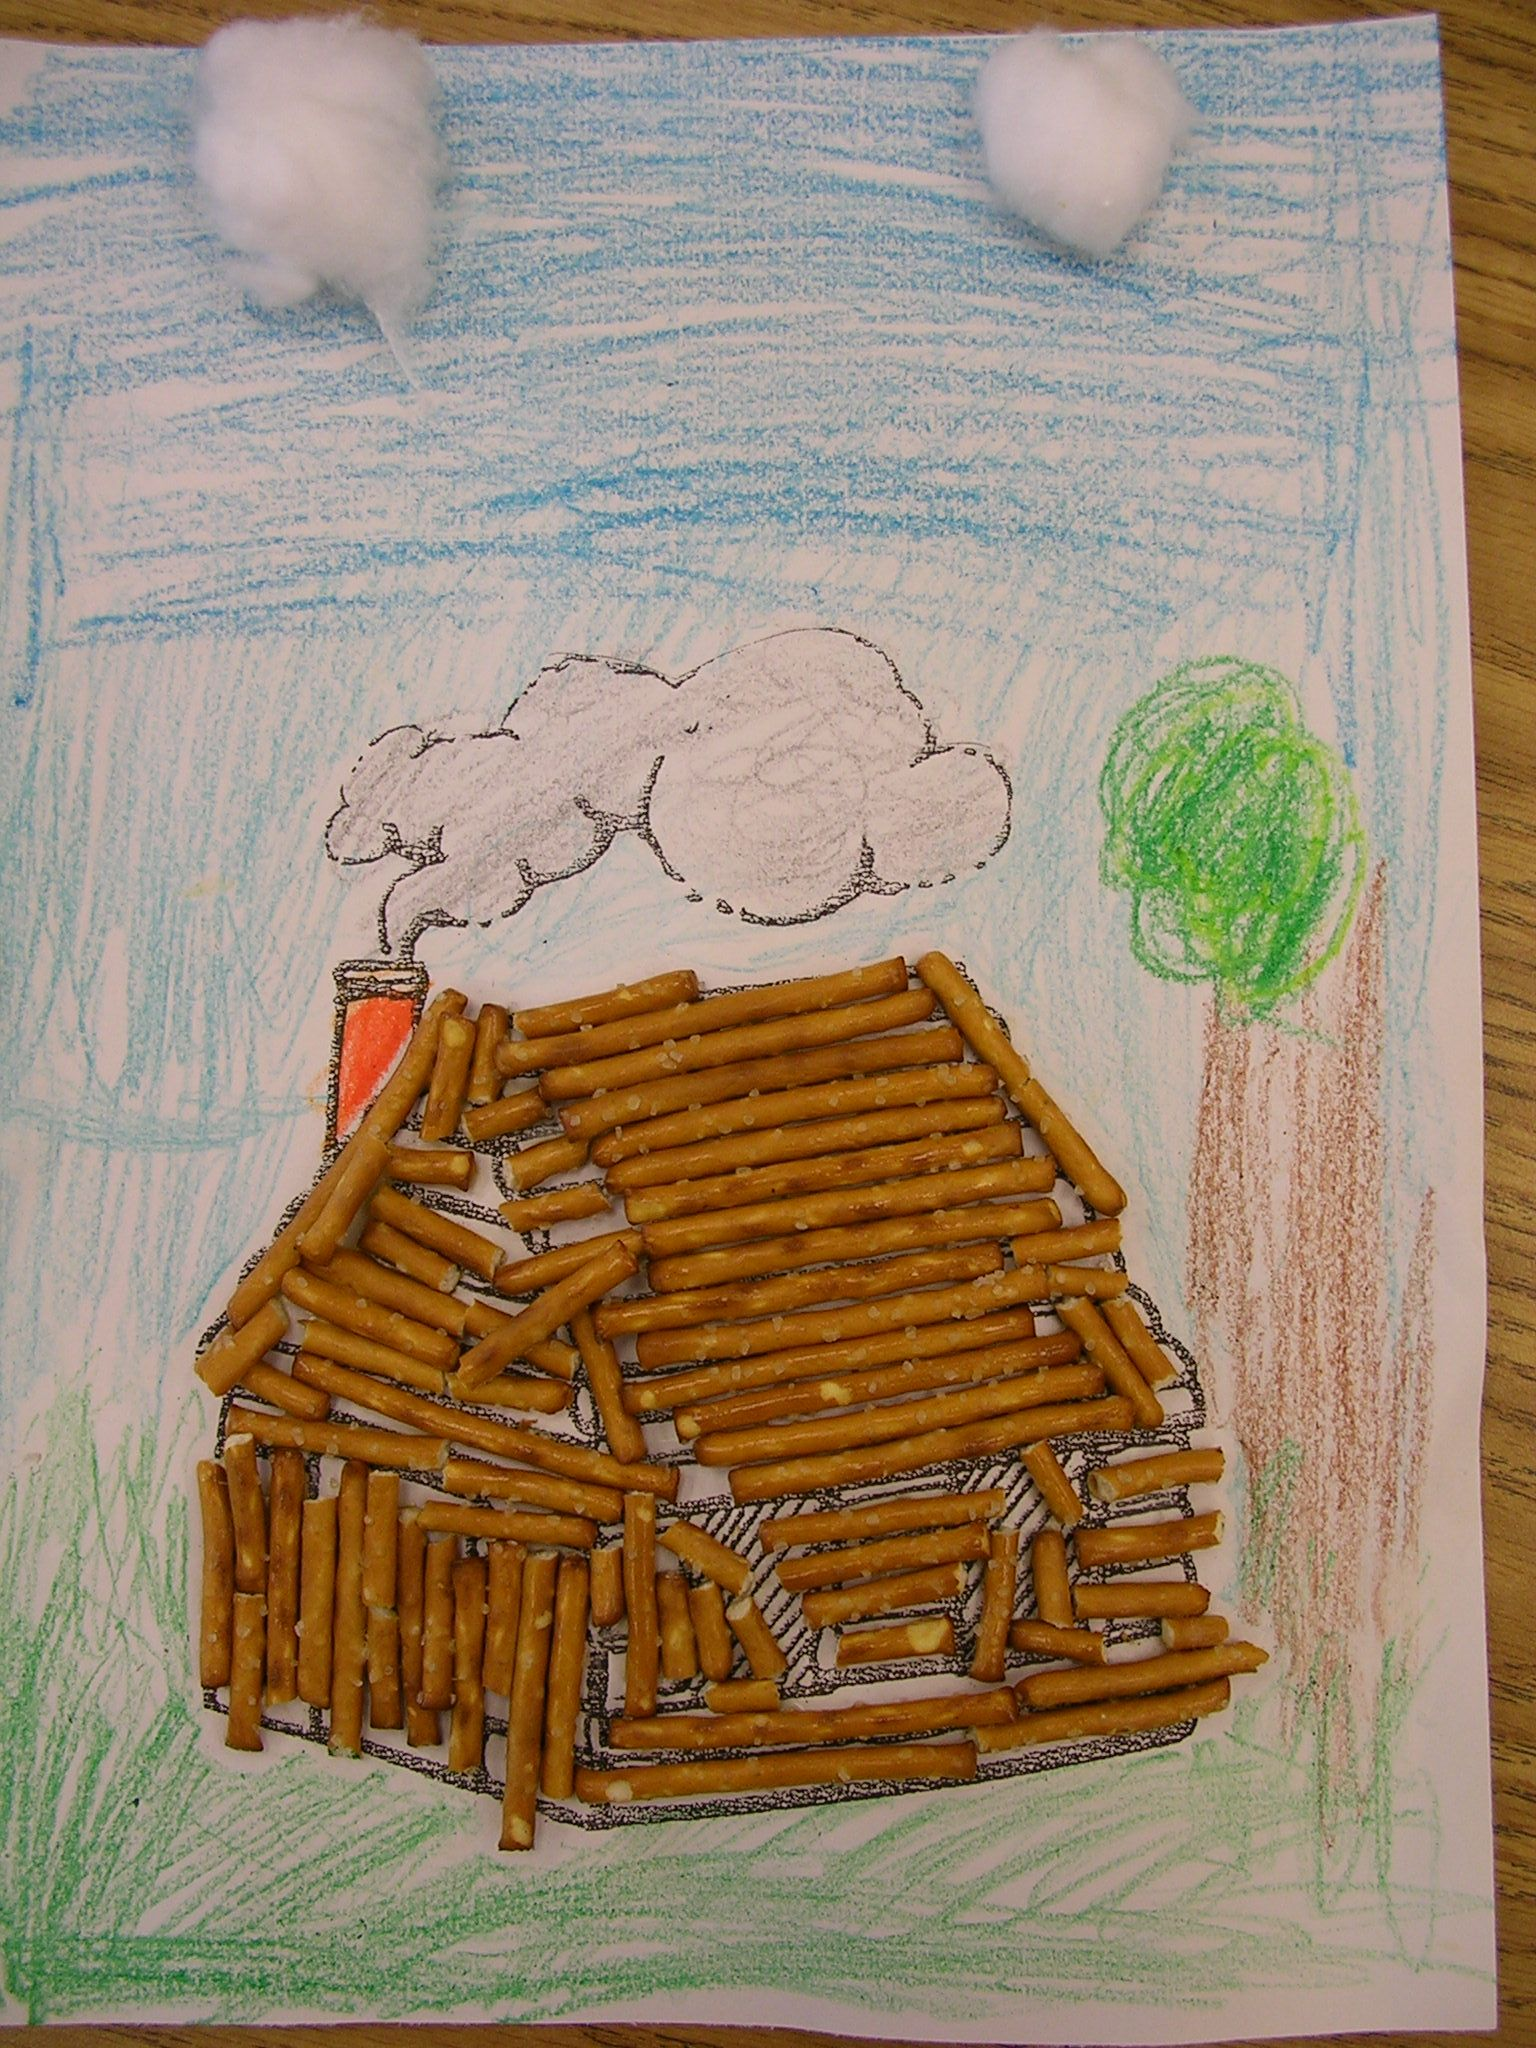 Studying Abraham Lincoln Create Sheet With Lincoln Facts Or Make A Poster With Cabin At